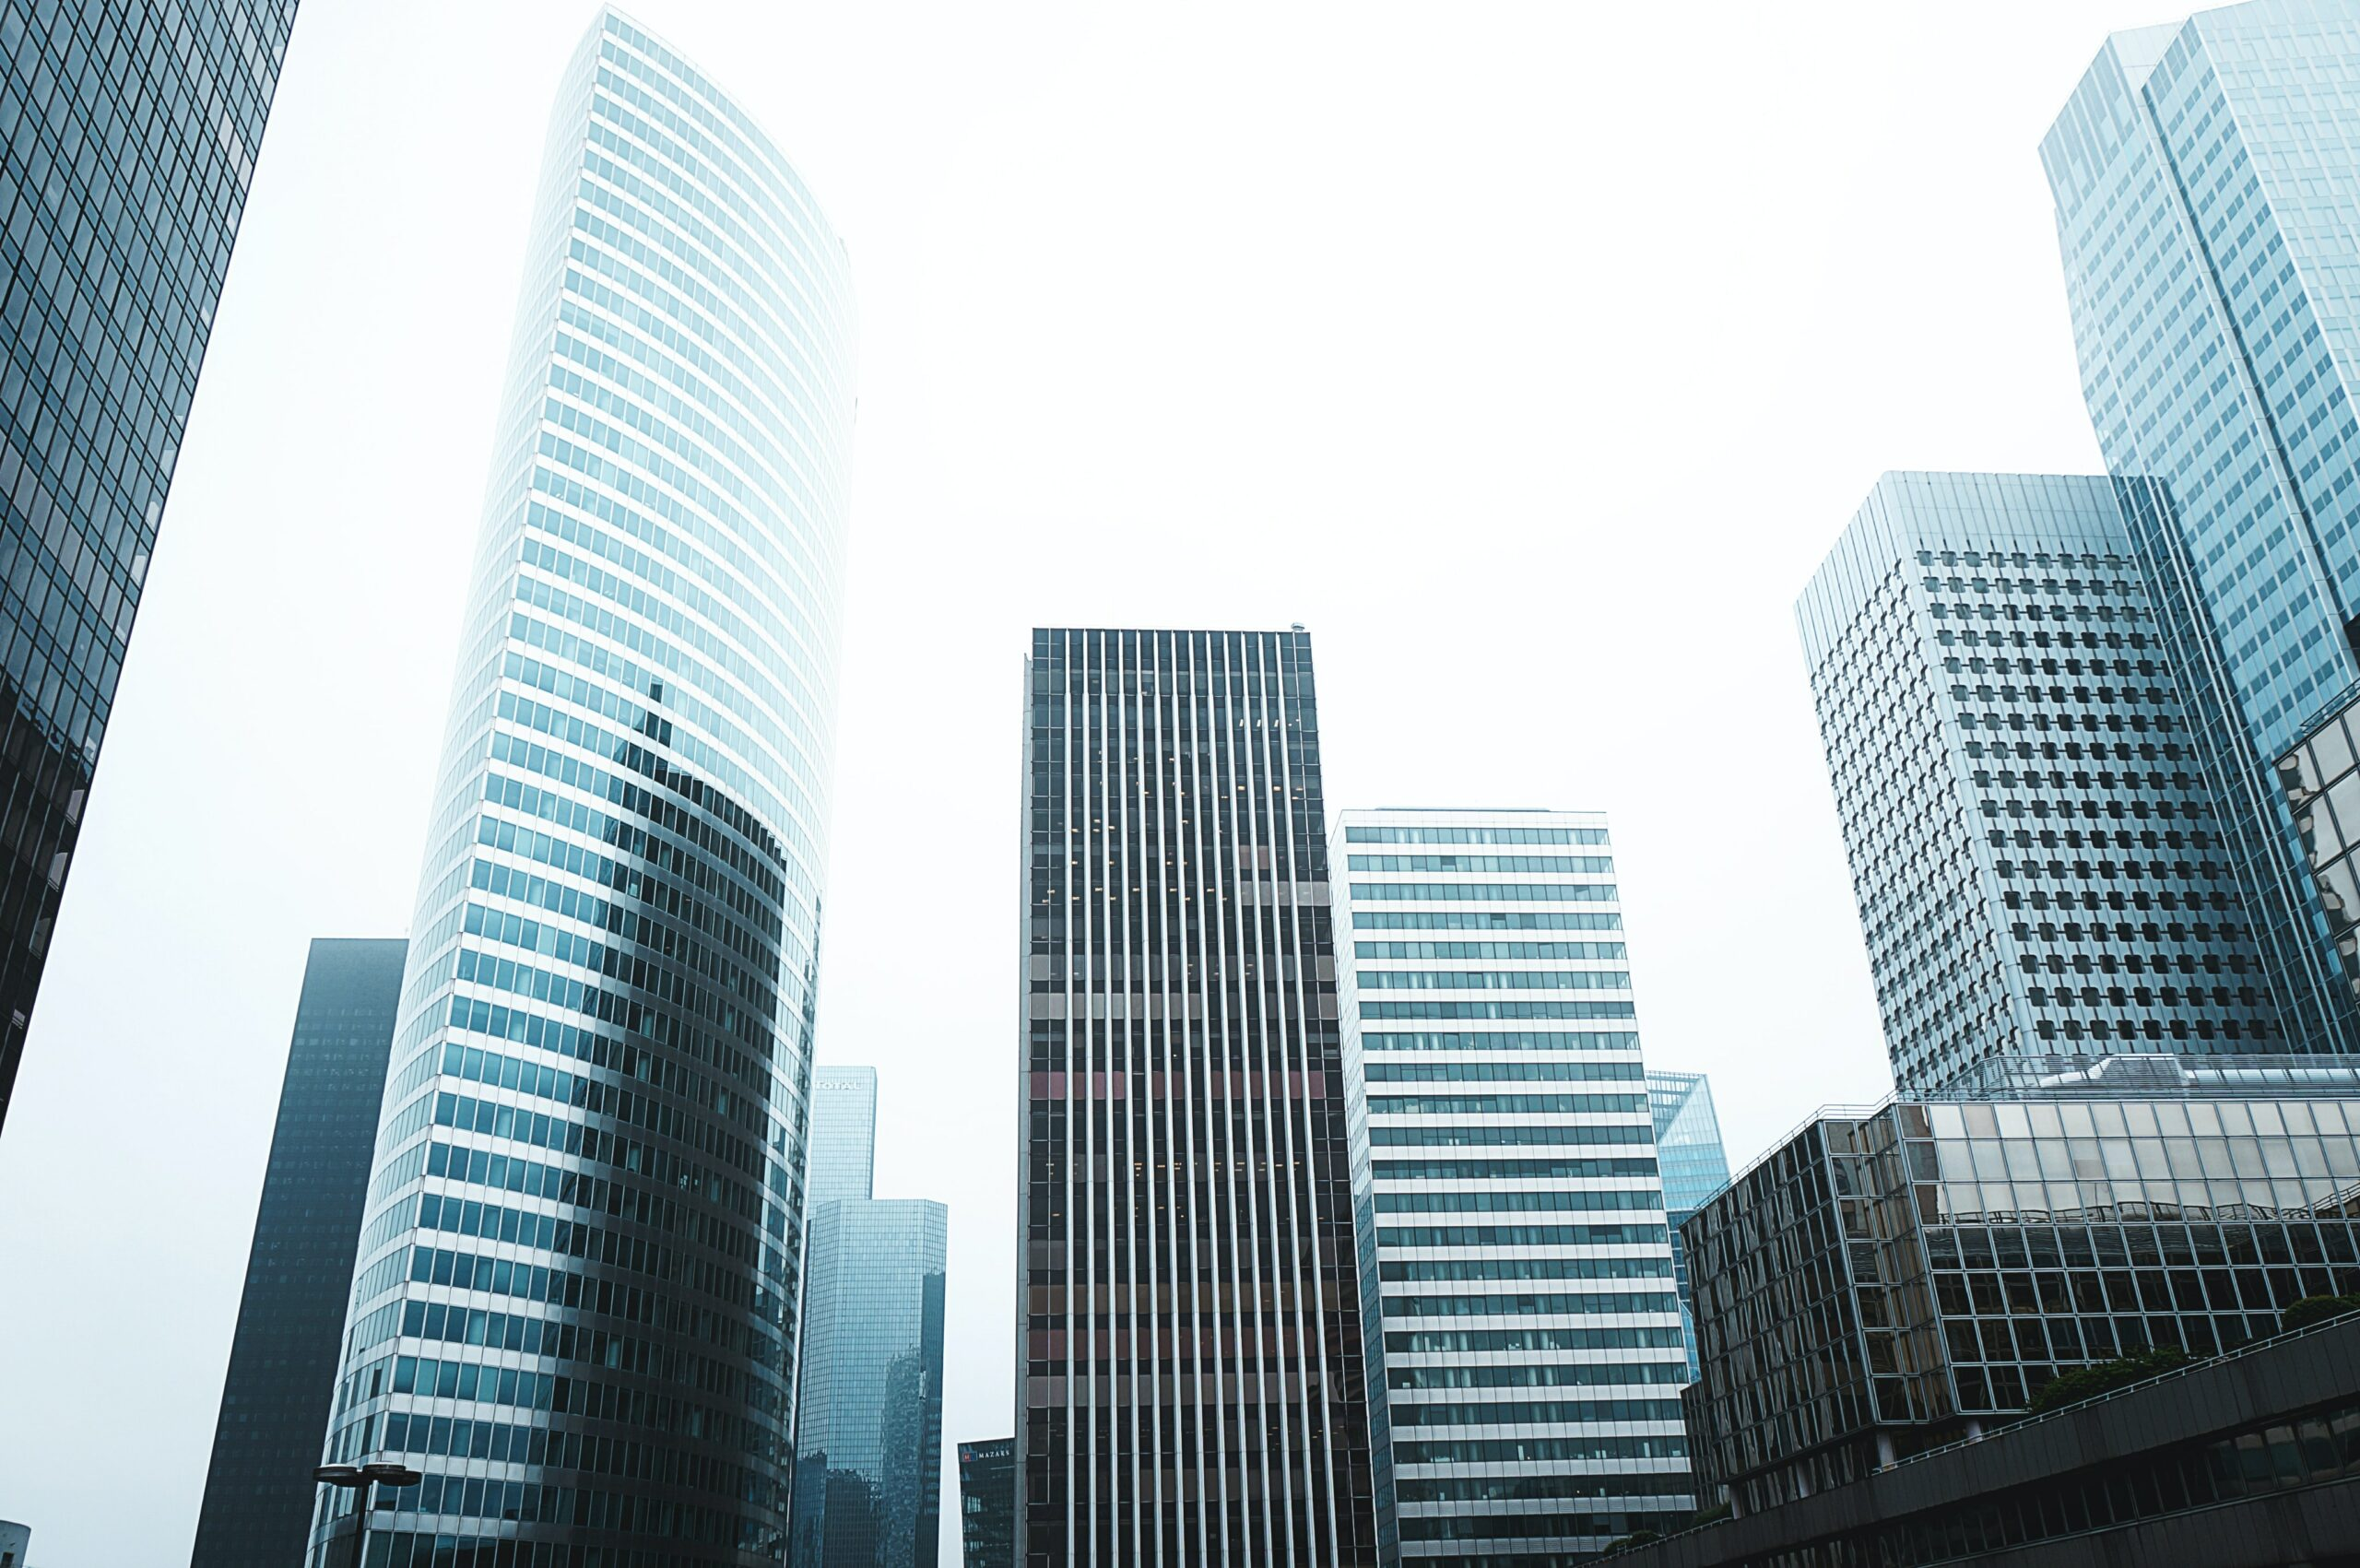 image of commercial buildings